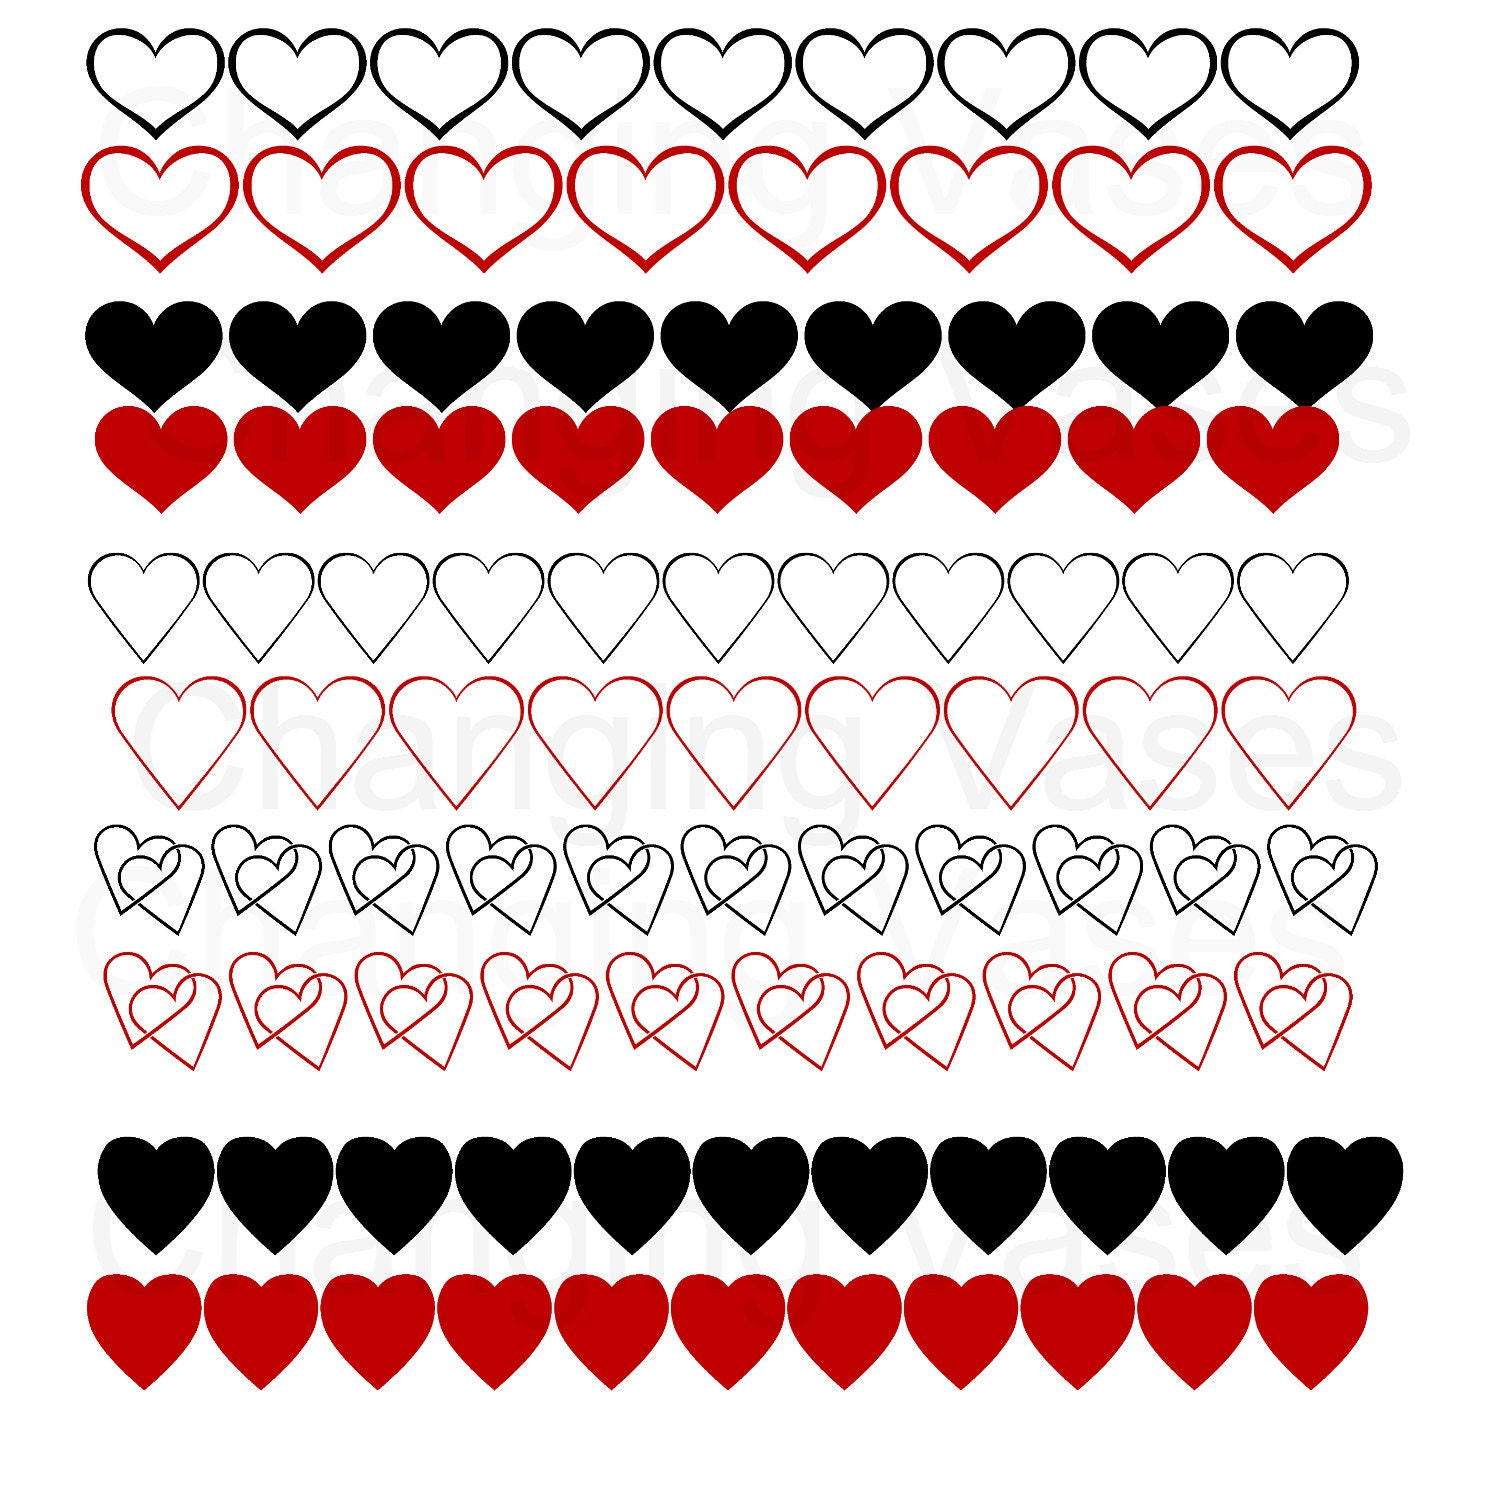 Valentines Day Clipart Border Digital download valentines